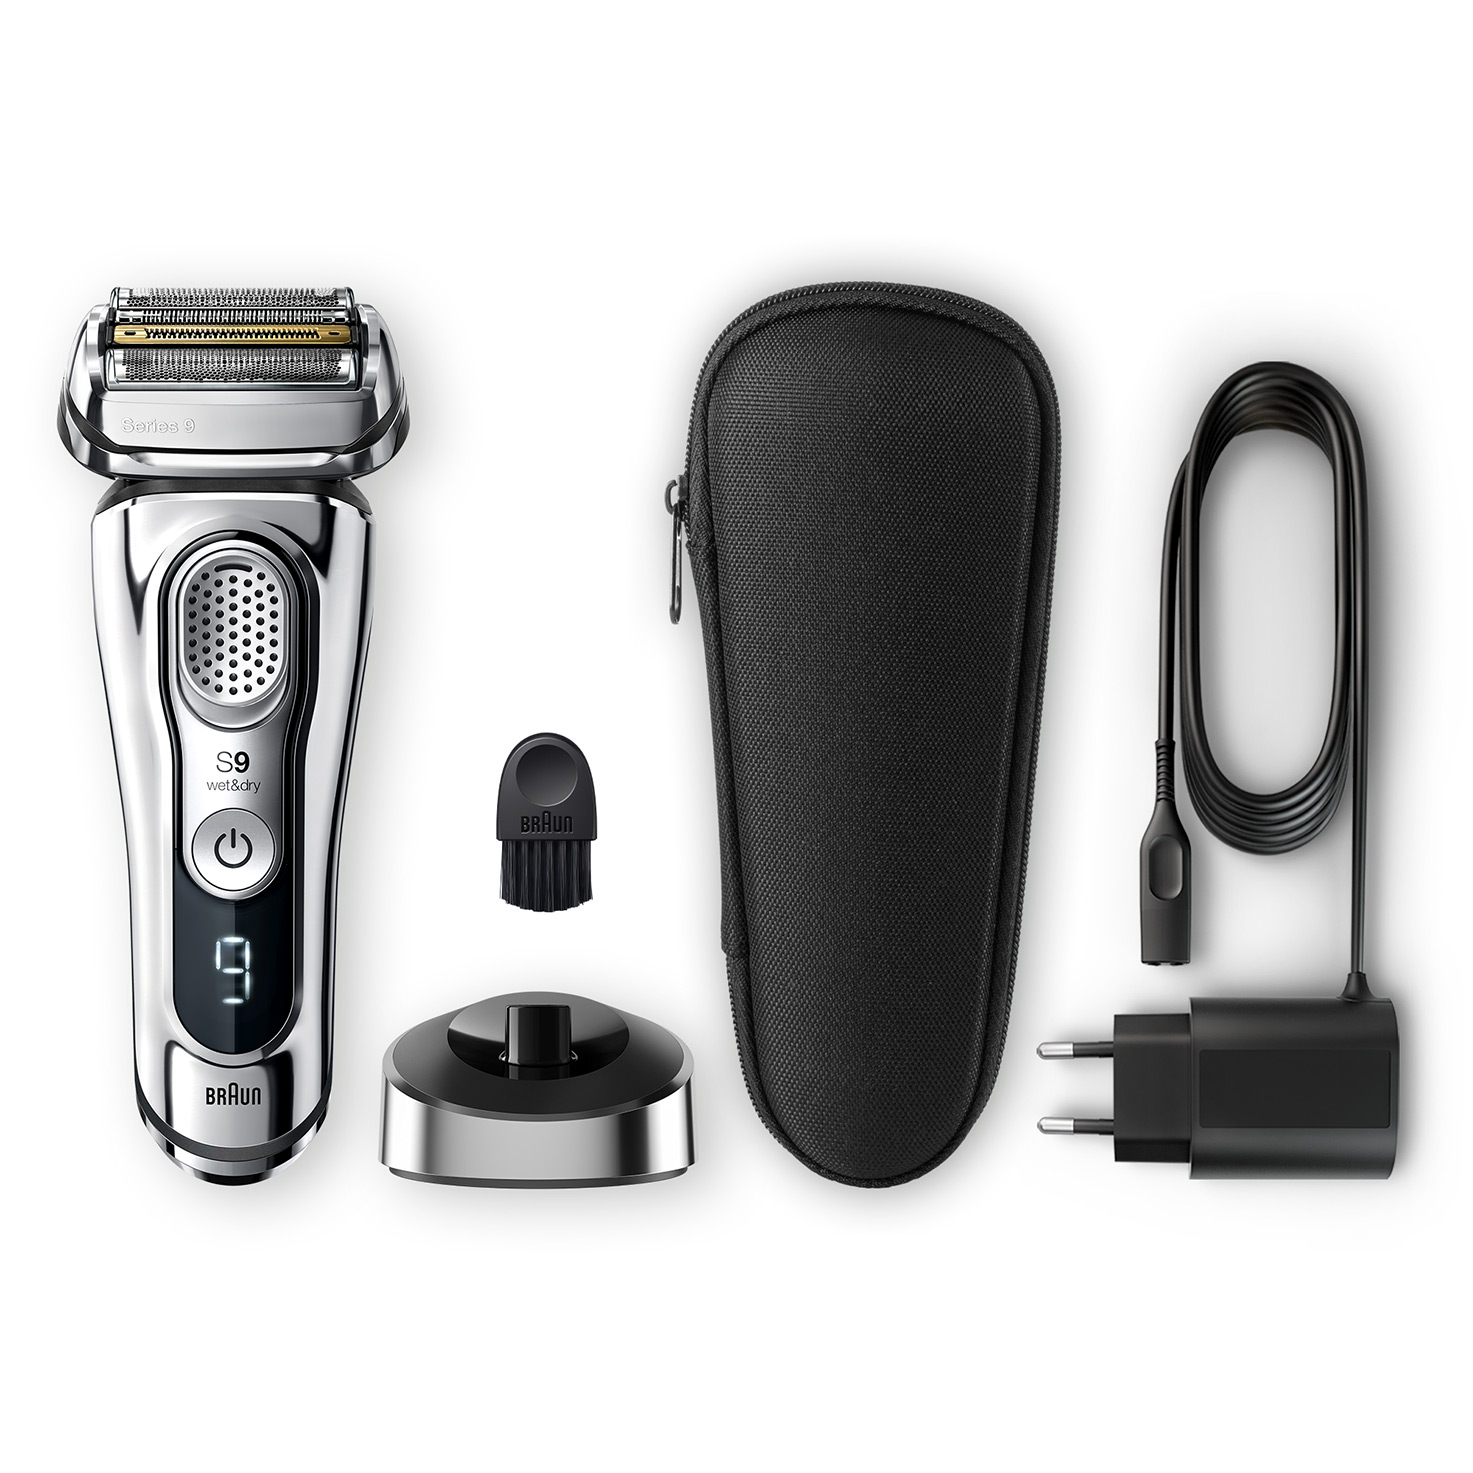 Series 9 9335s shaver - What´s in the box